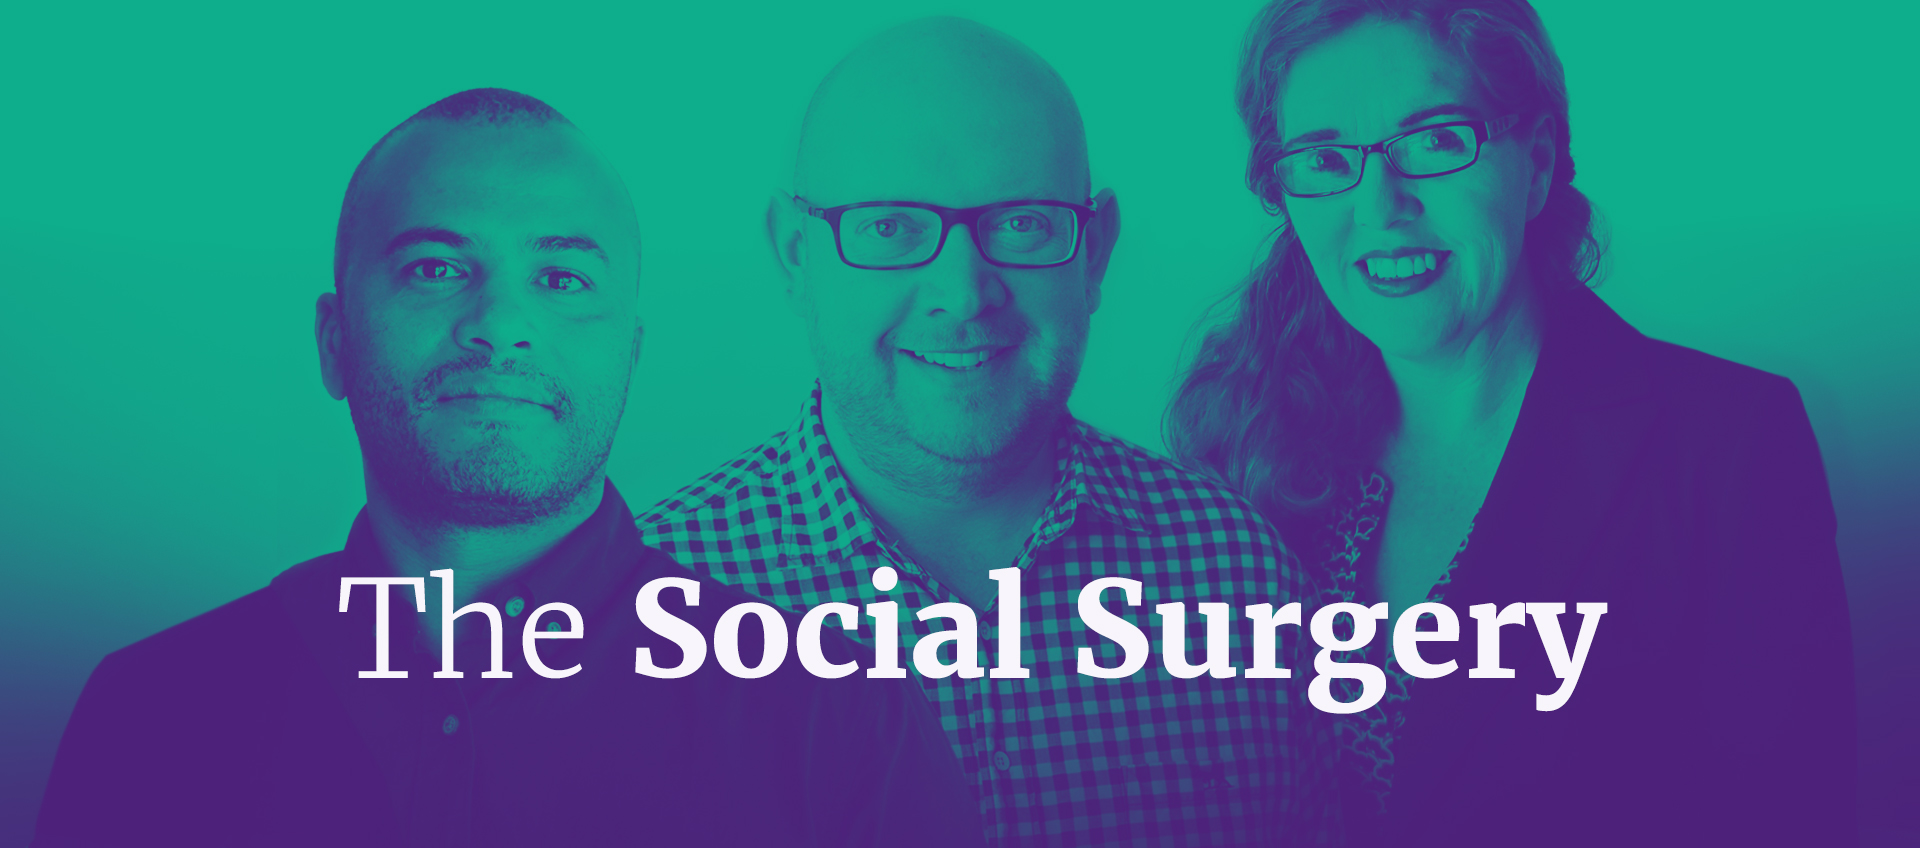 The Social Surgery Podcast